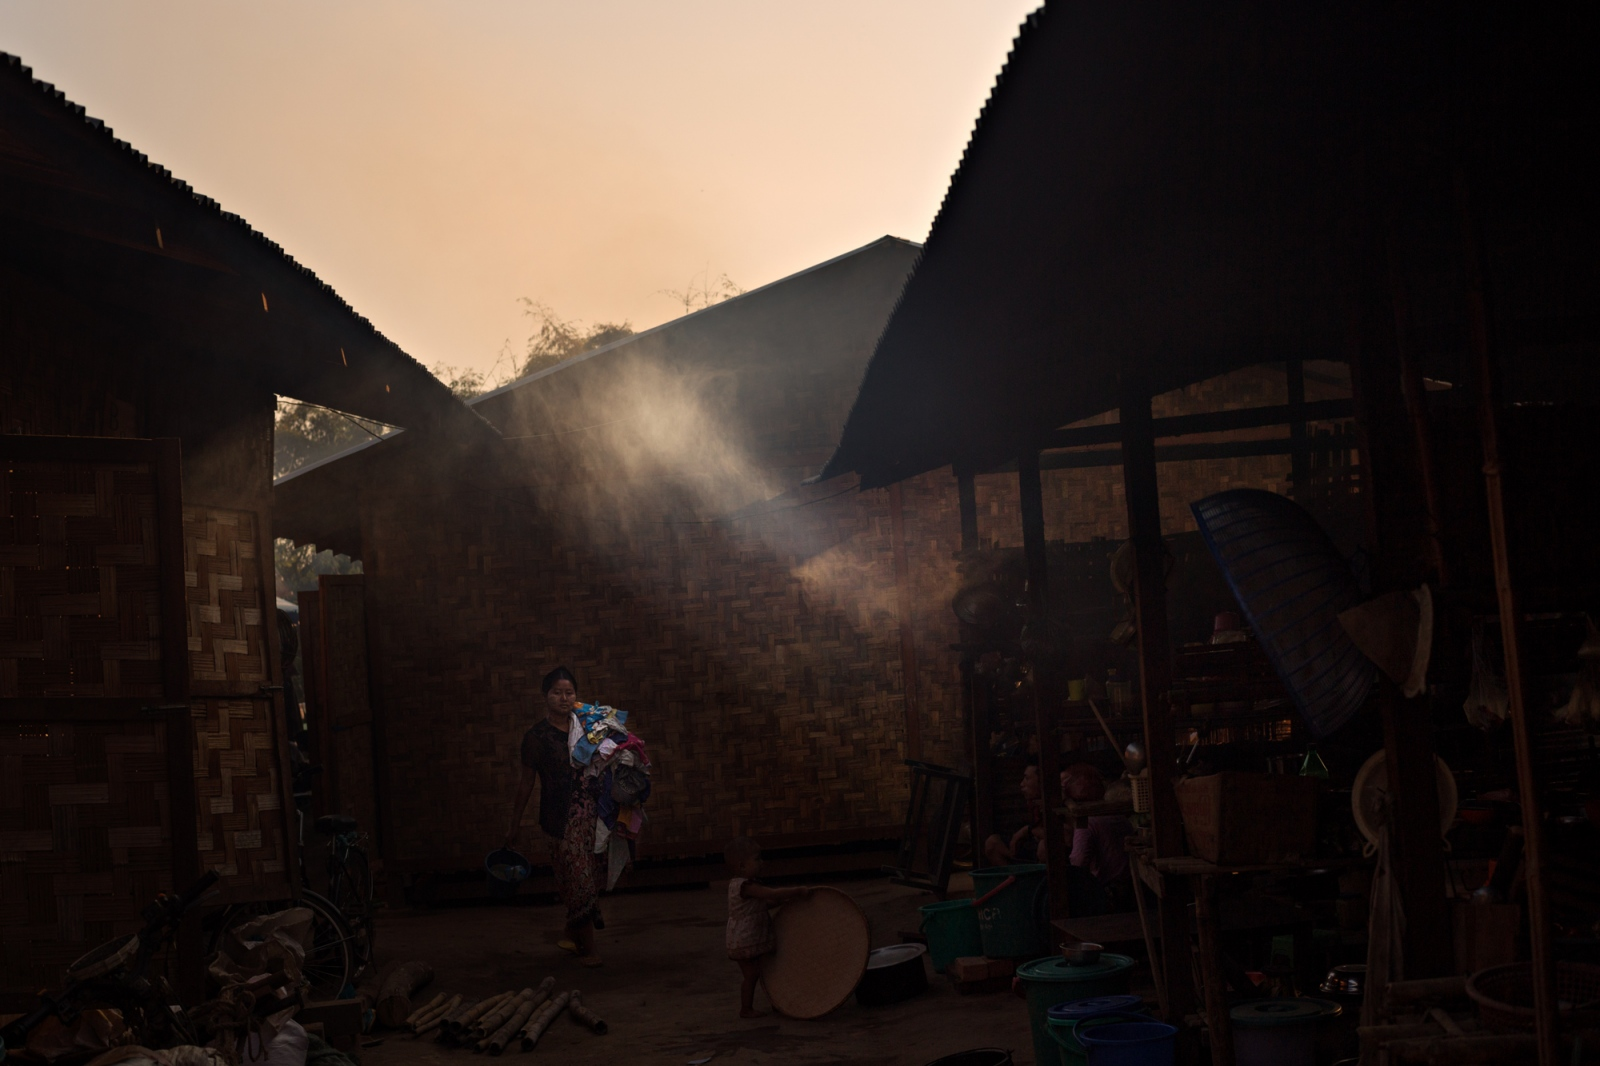 Near Mytkyina, a Kachin refugee carries laundry through the camp where she lives. Thousands of people have been displaced by conflict between the Myanmar Military and the Kachin ethnic armies.